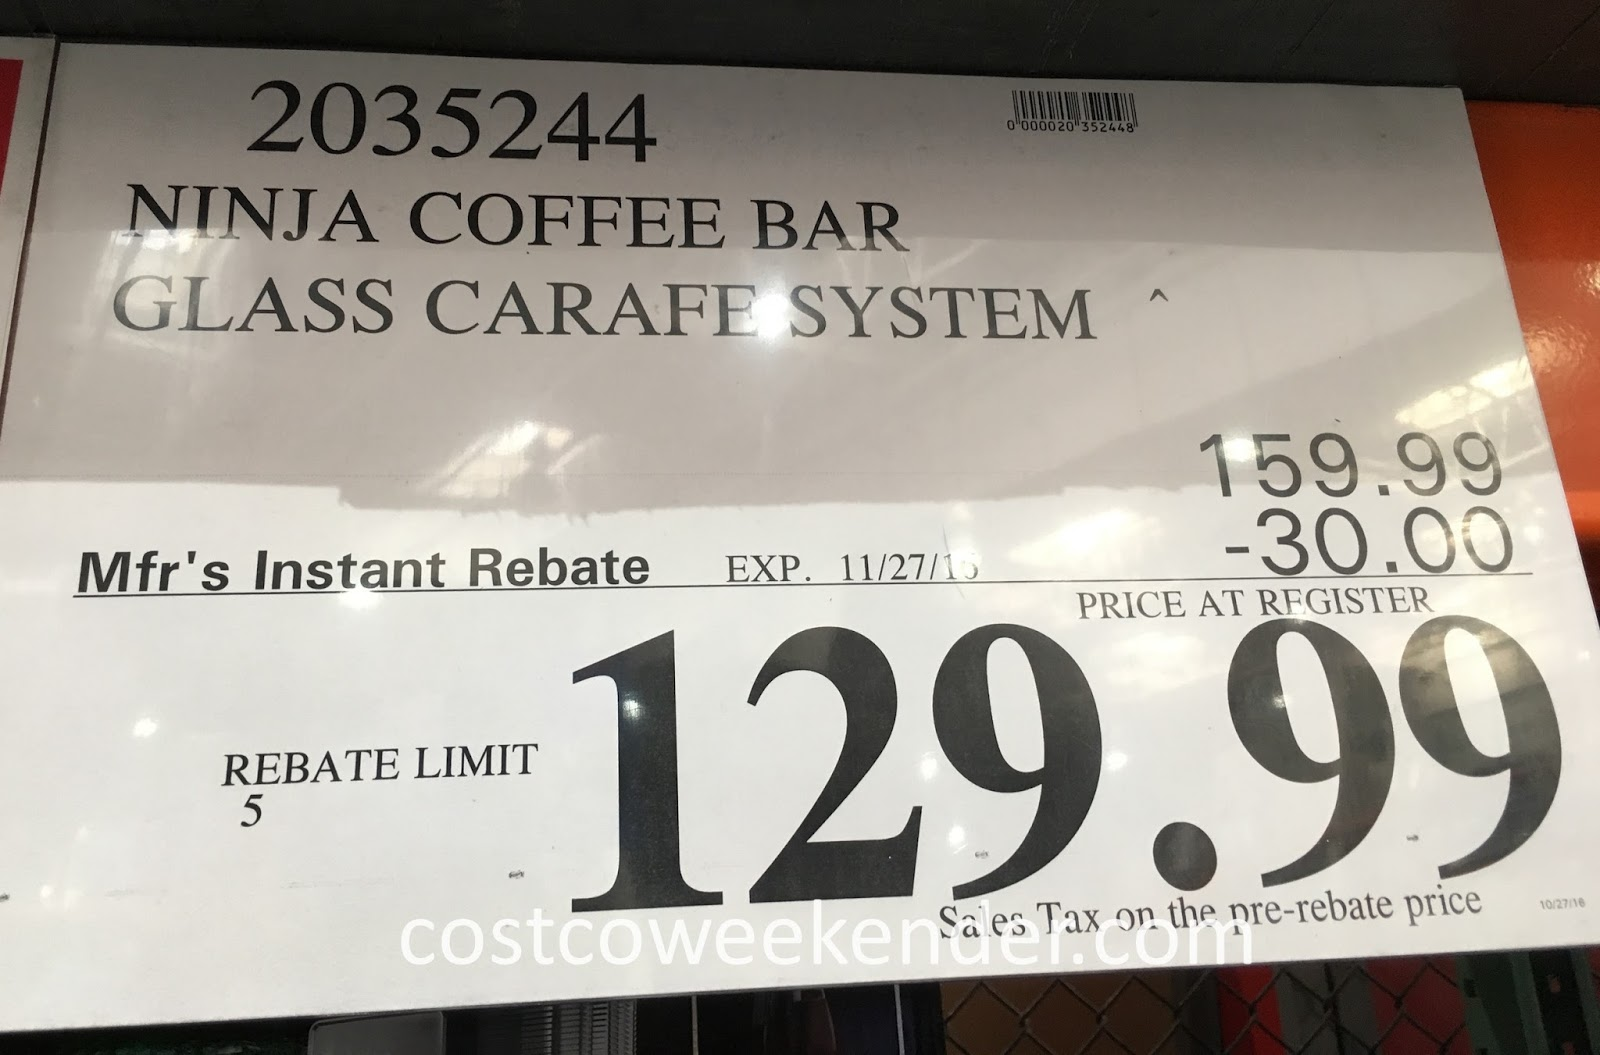 Deal for the Ninja Coffee Bar Glass Carafe System at Costco